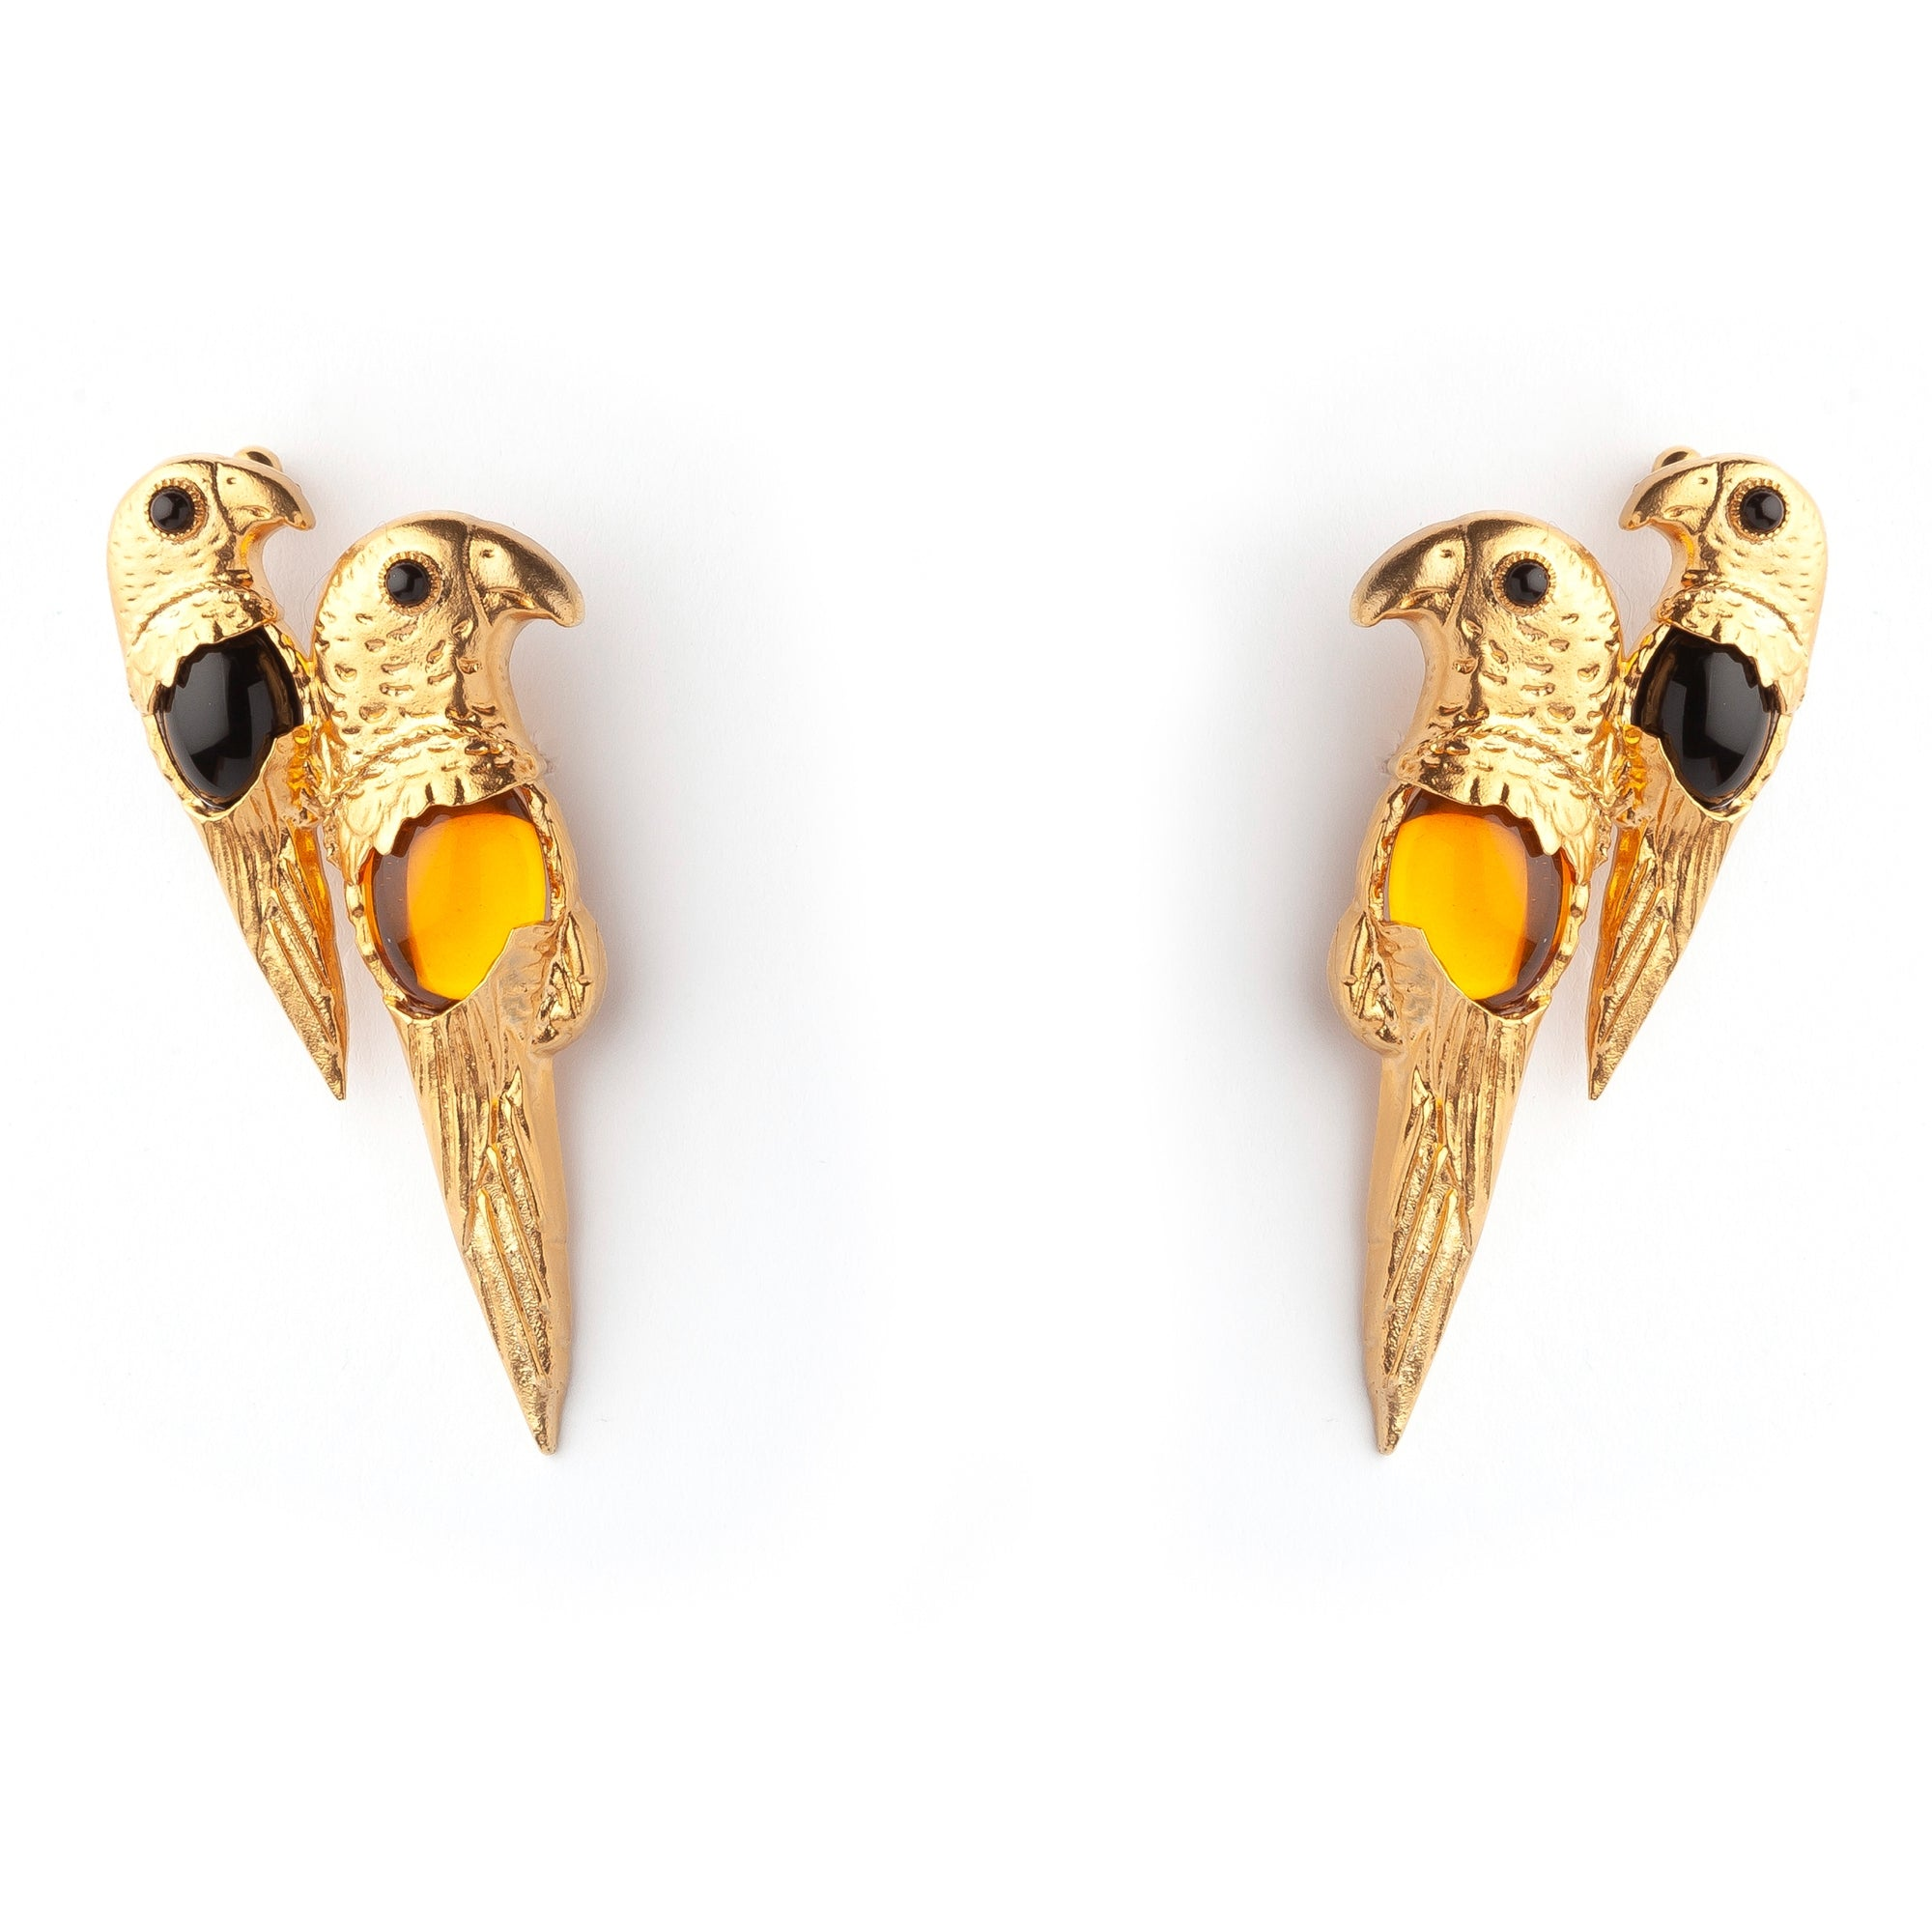 Parrot Luxury Earrings